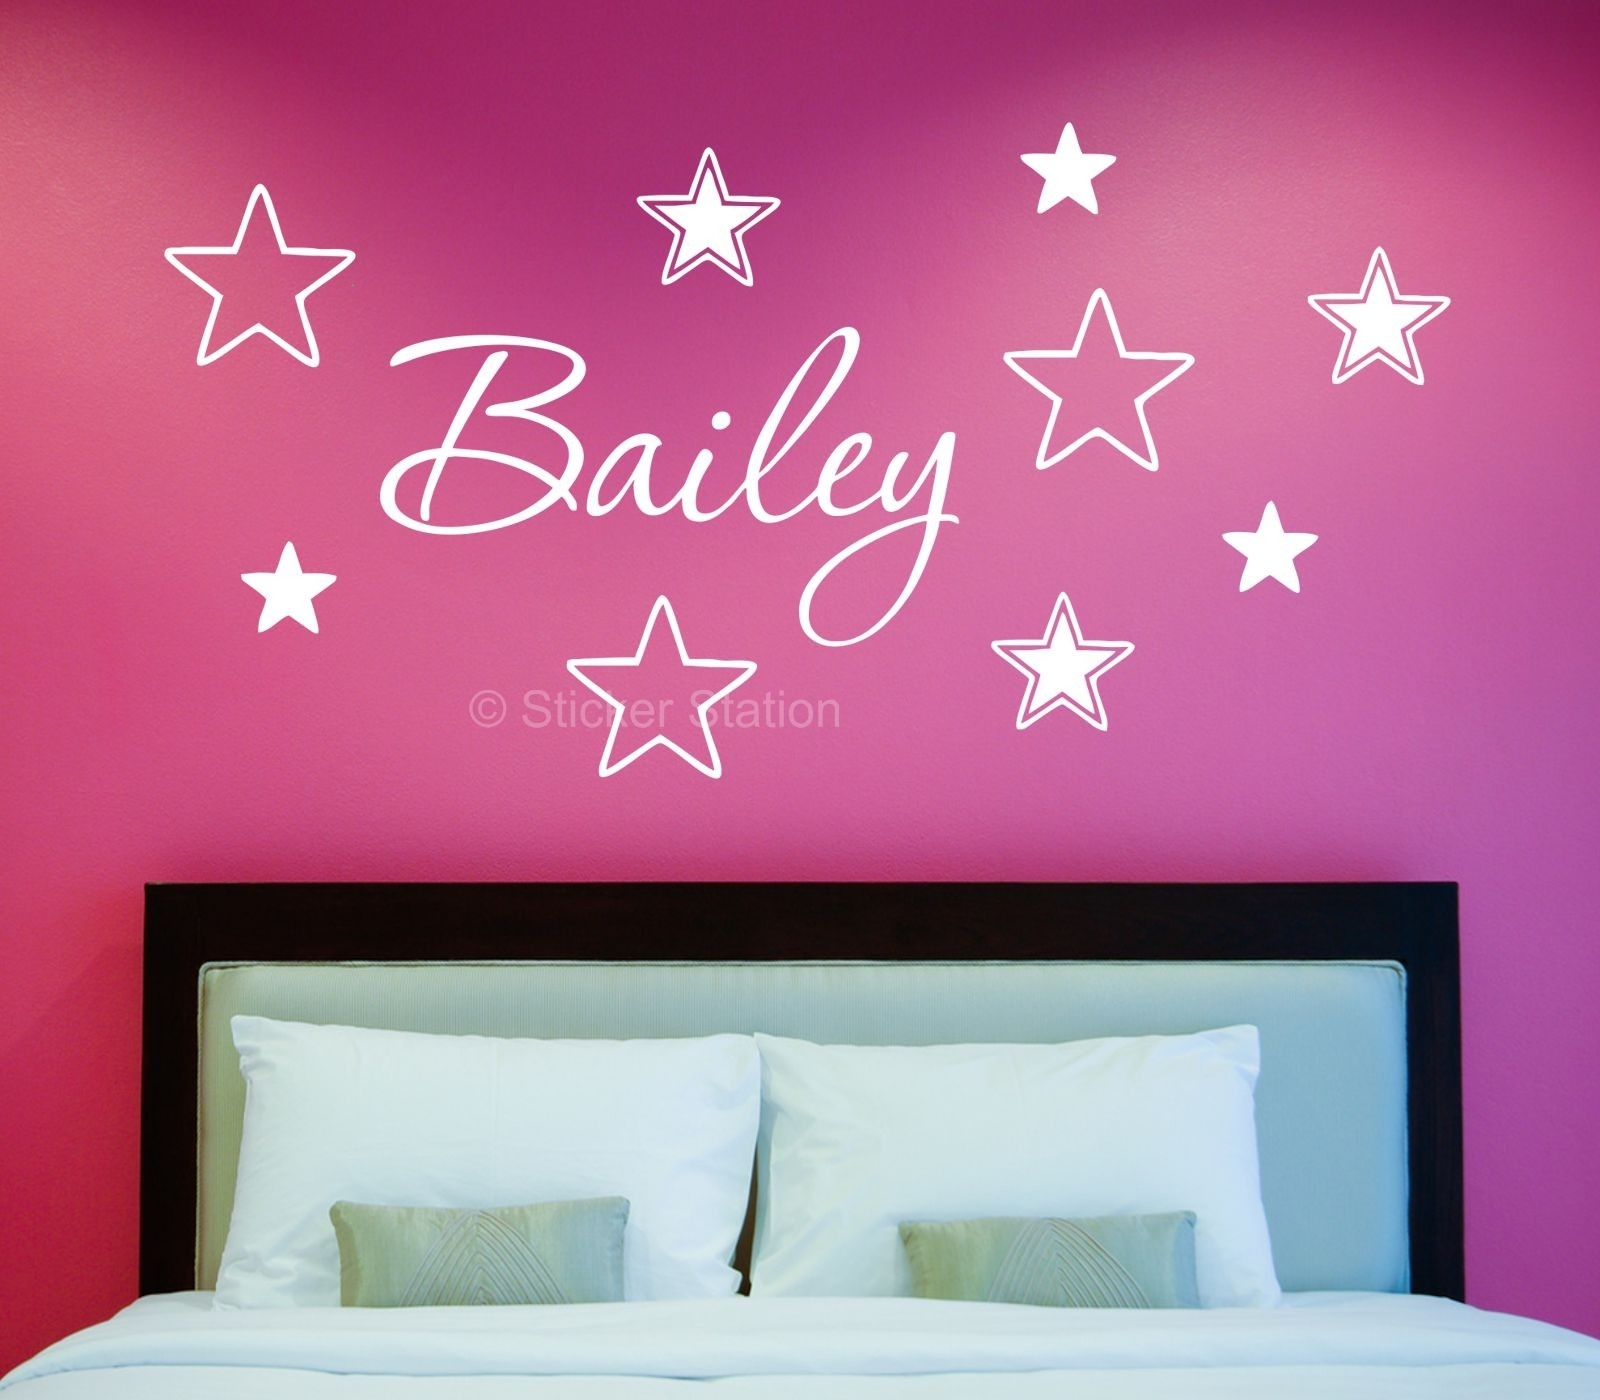 Name In Stars Personalised Wall Art Sticker – Sticker Station Within Most Recently Released Name Wall Art (Gallery 2 of 20)